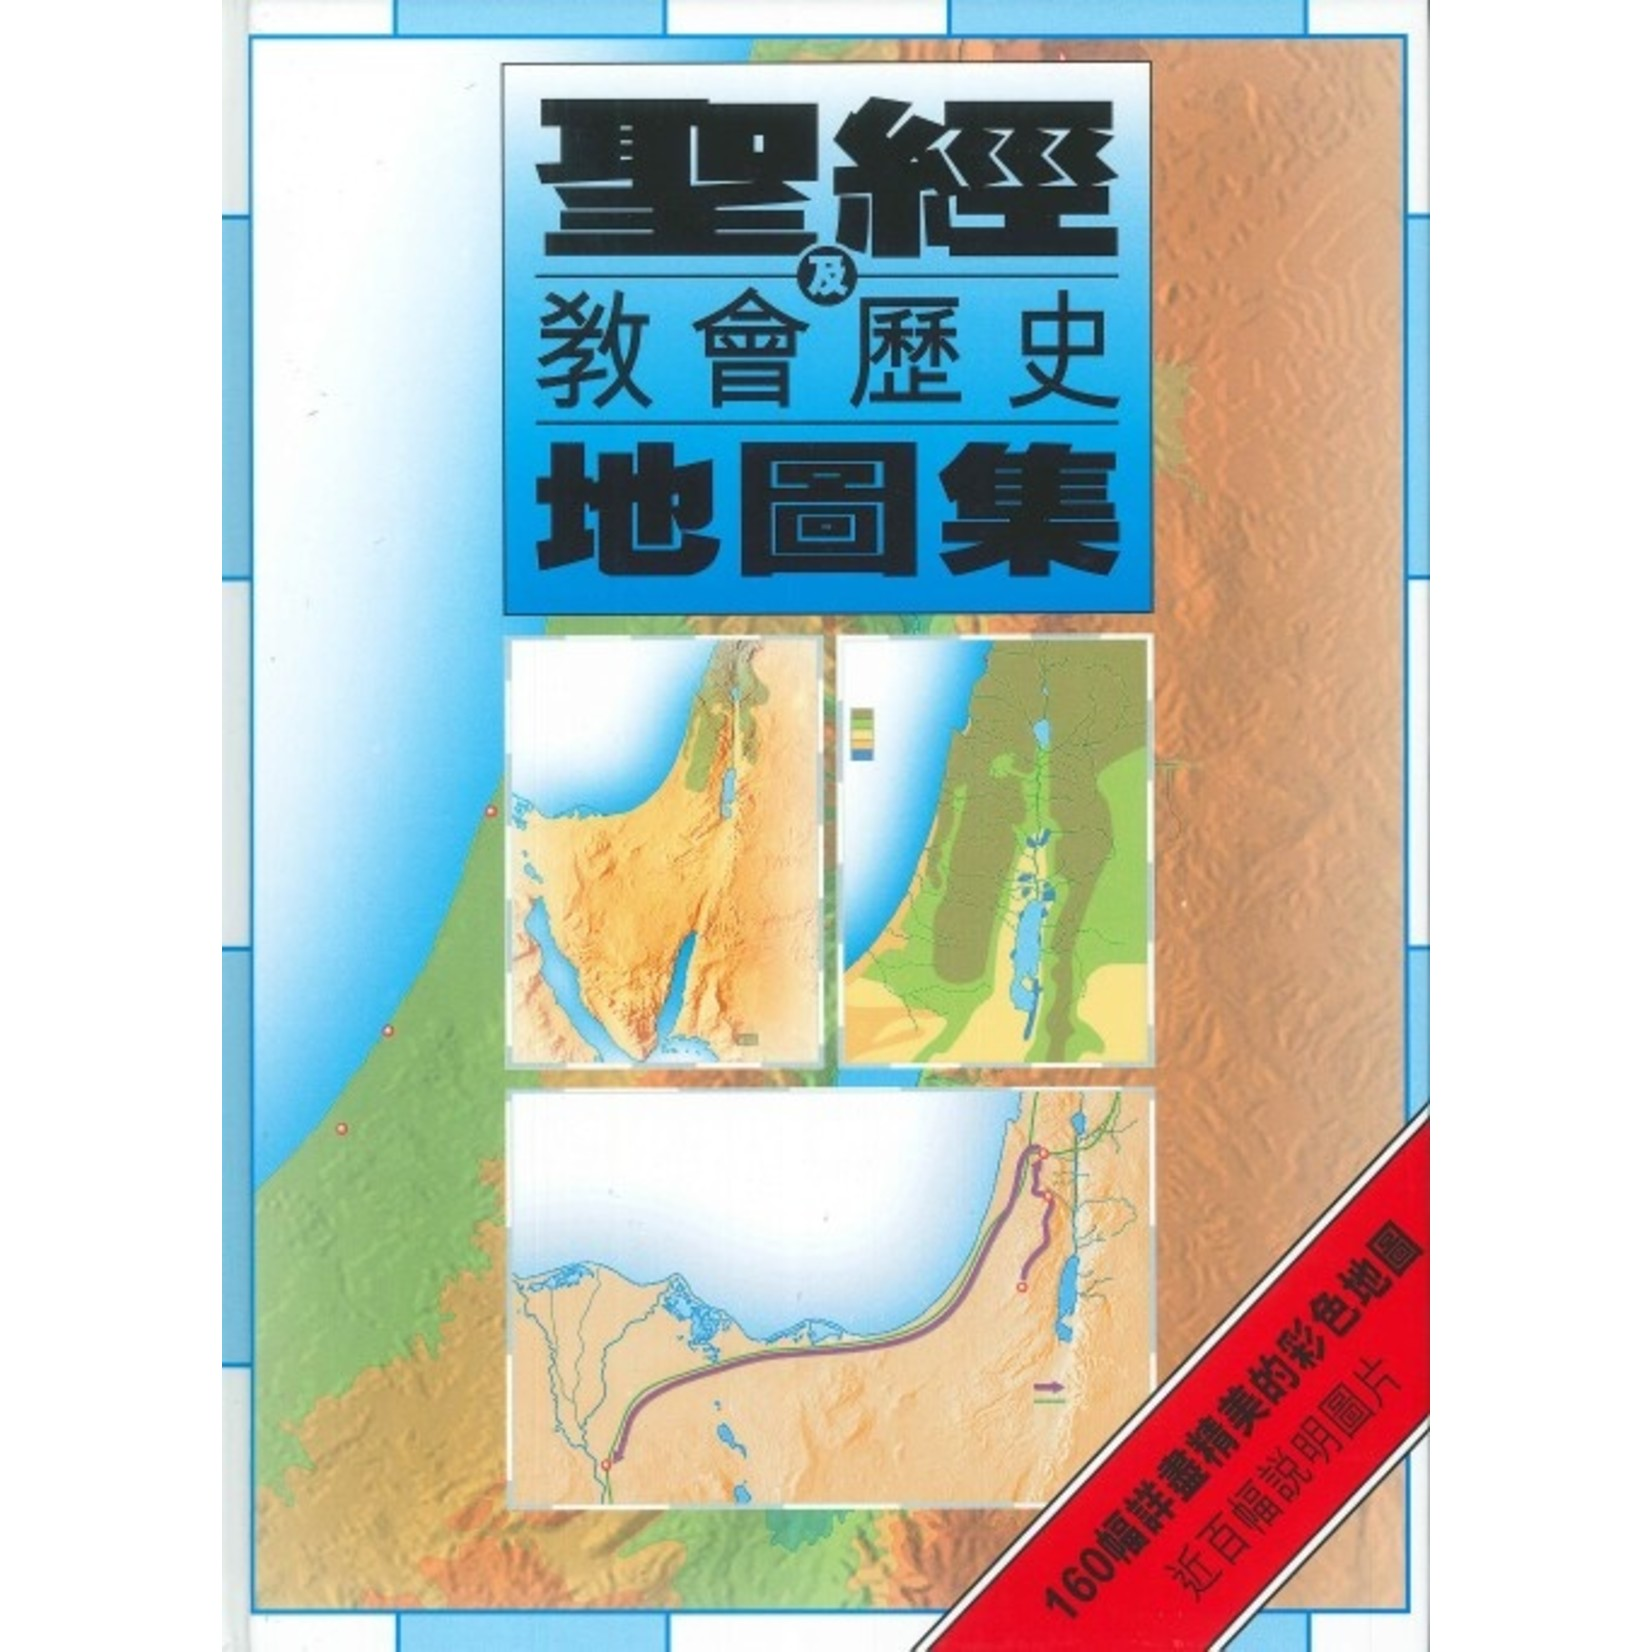 漢語聖經協會 Chinese Bible International 聖經及教會歷史地圖集 Altas of the Bible and the History of Christianity (Hardcover)